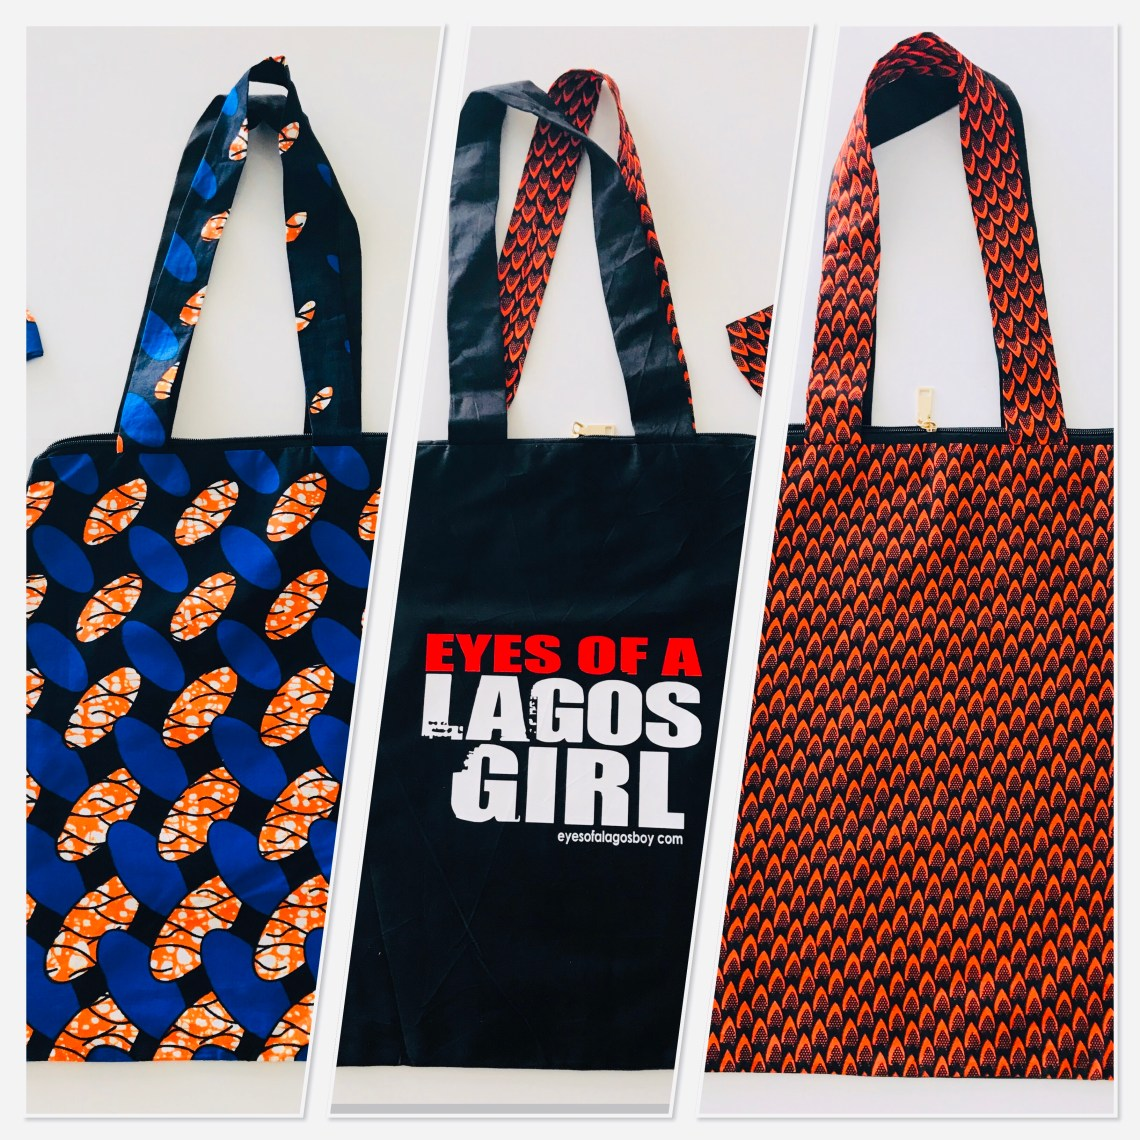 Eyes of a Lagos Girl tote bags